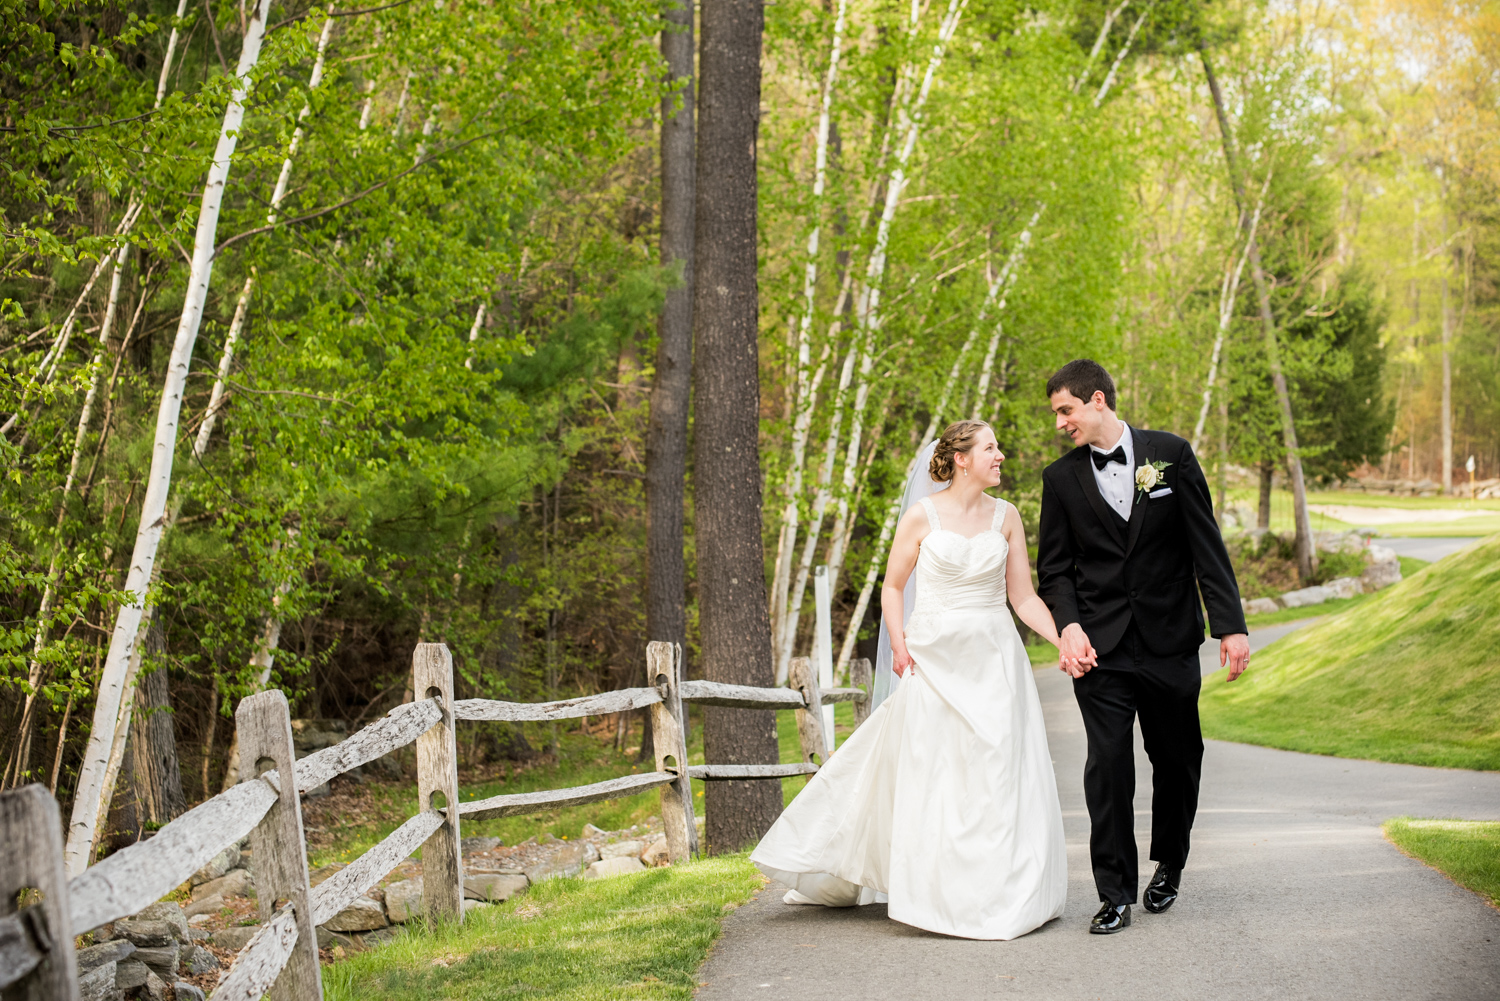 Julianne & Jeff - Wedgewood Pines Country Club Wedding